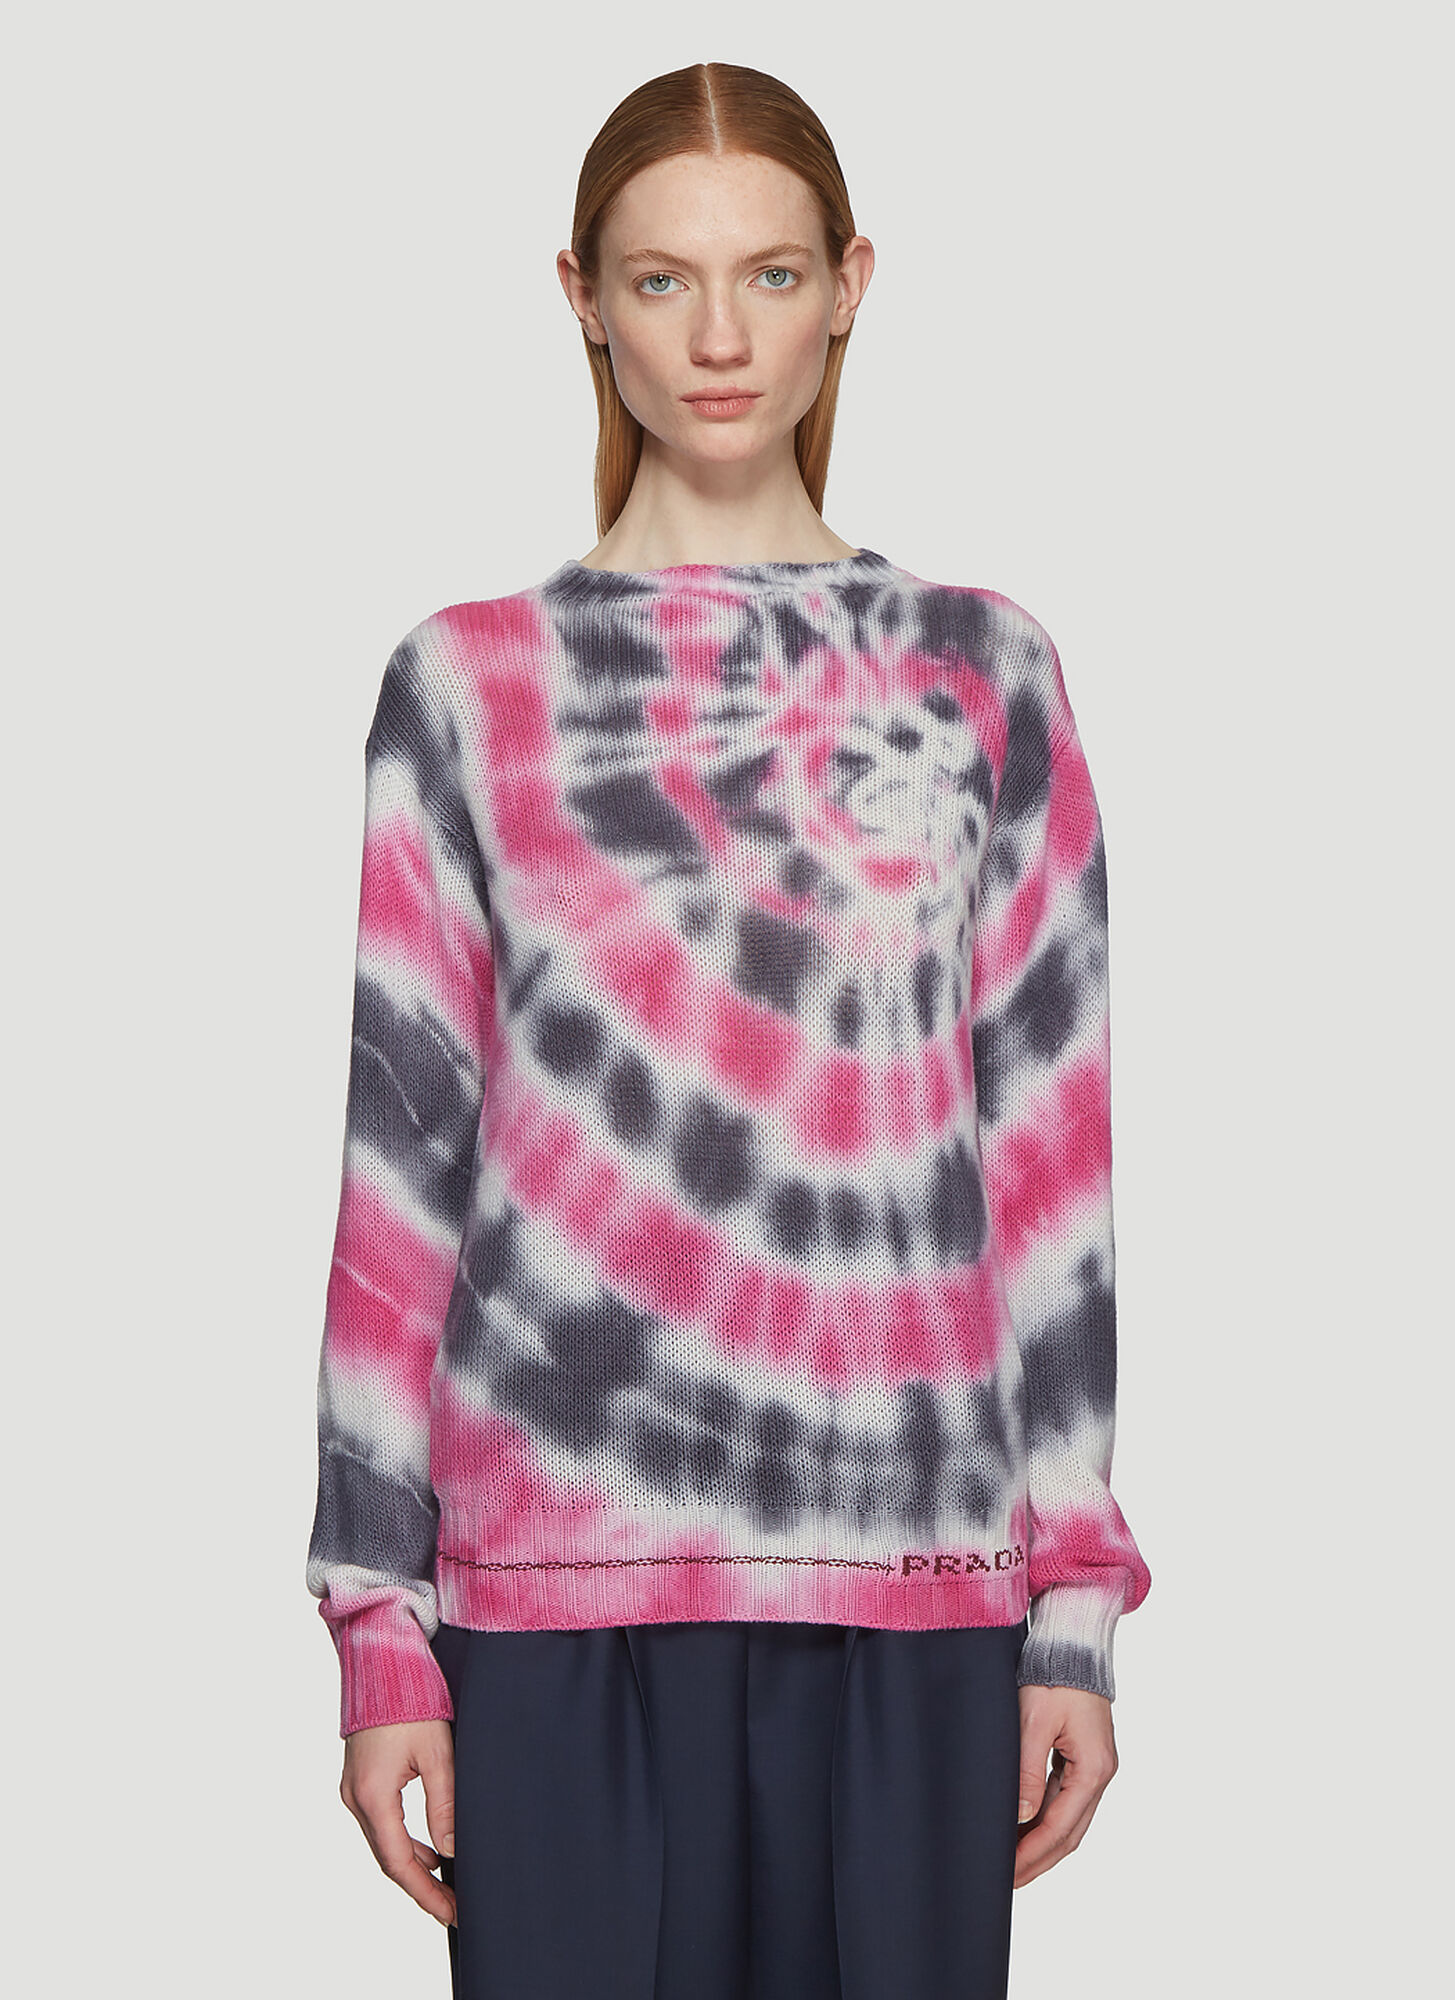 Prada Tie-Dye Knitted Sweater in Pink